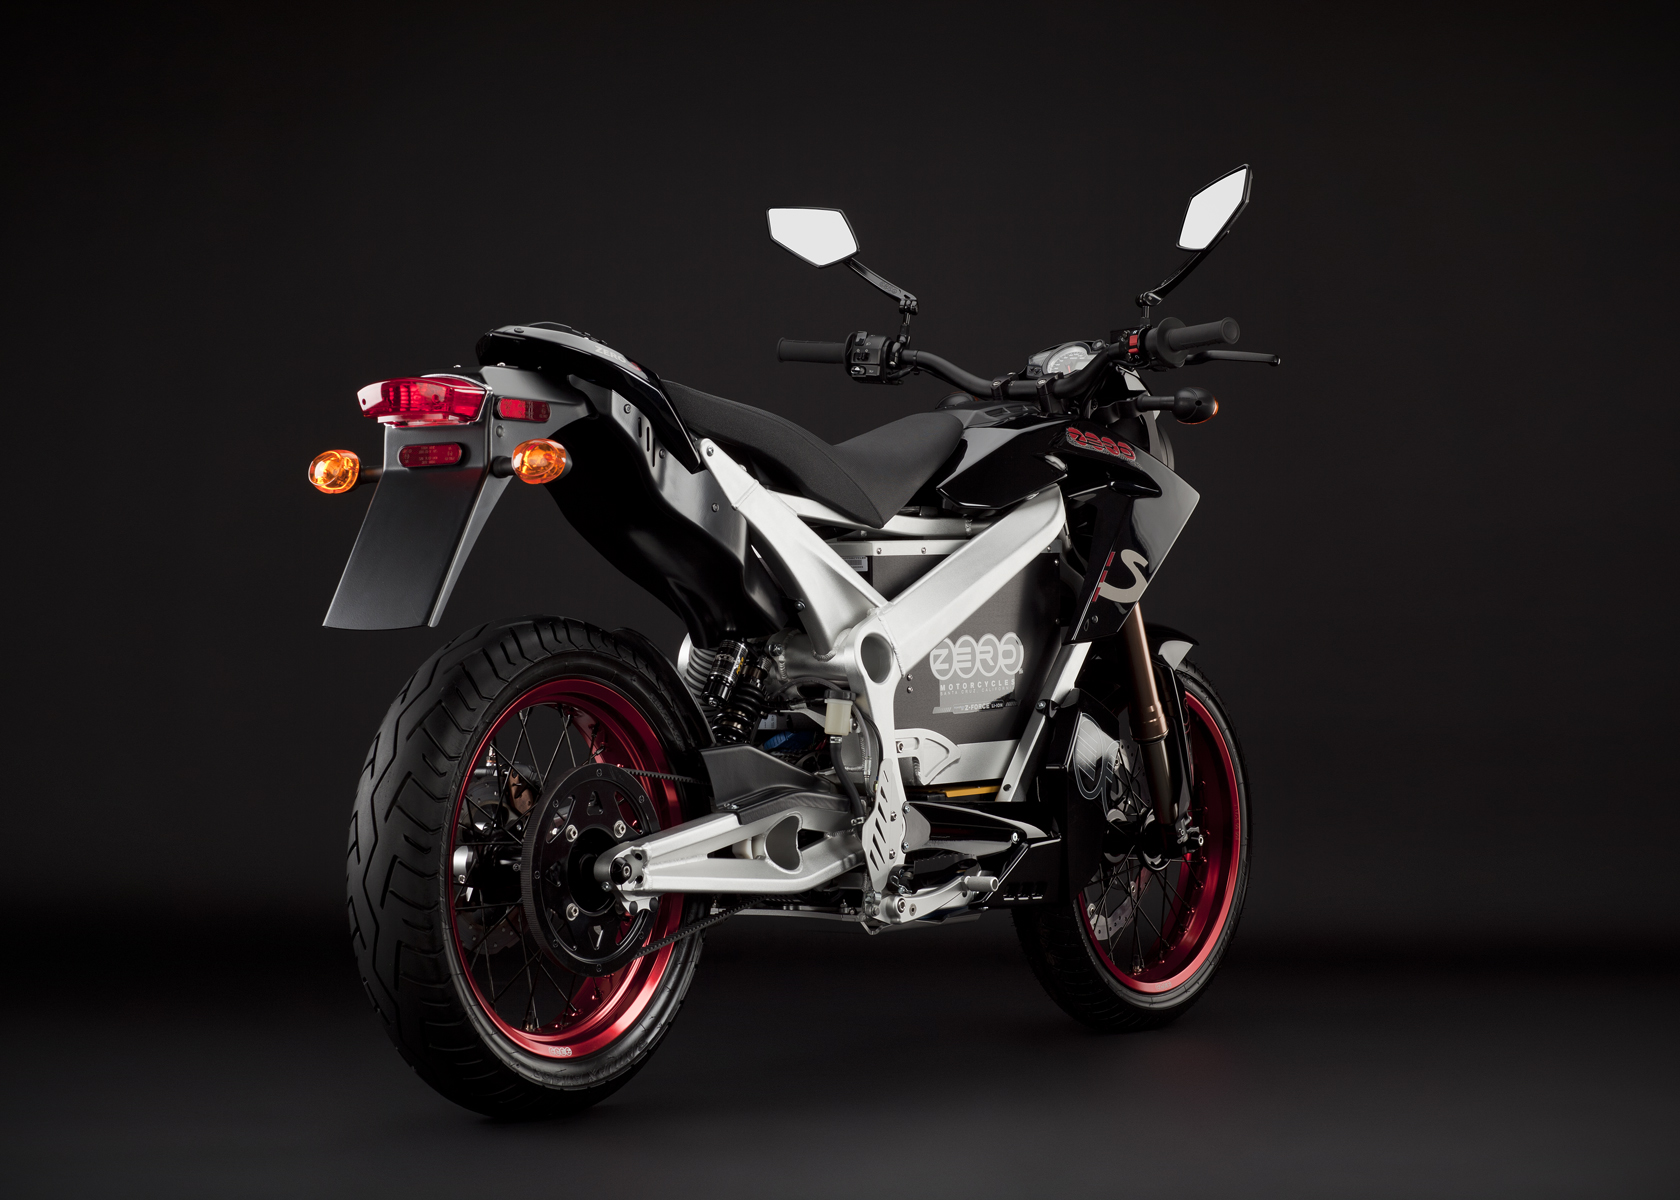 '.2011 Zero S Electric Motorcycle: Black Angle, Rear View.'